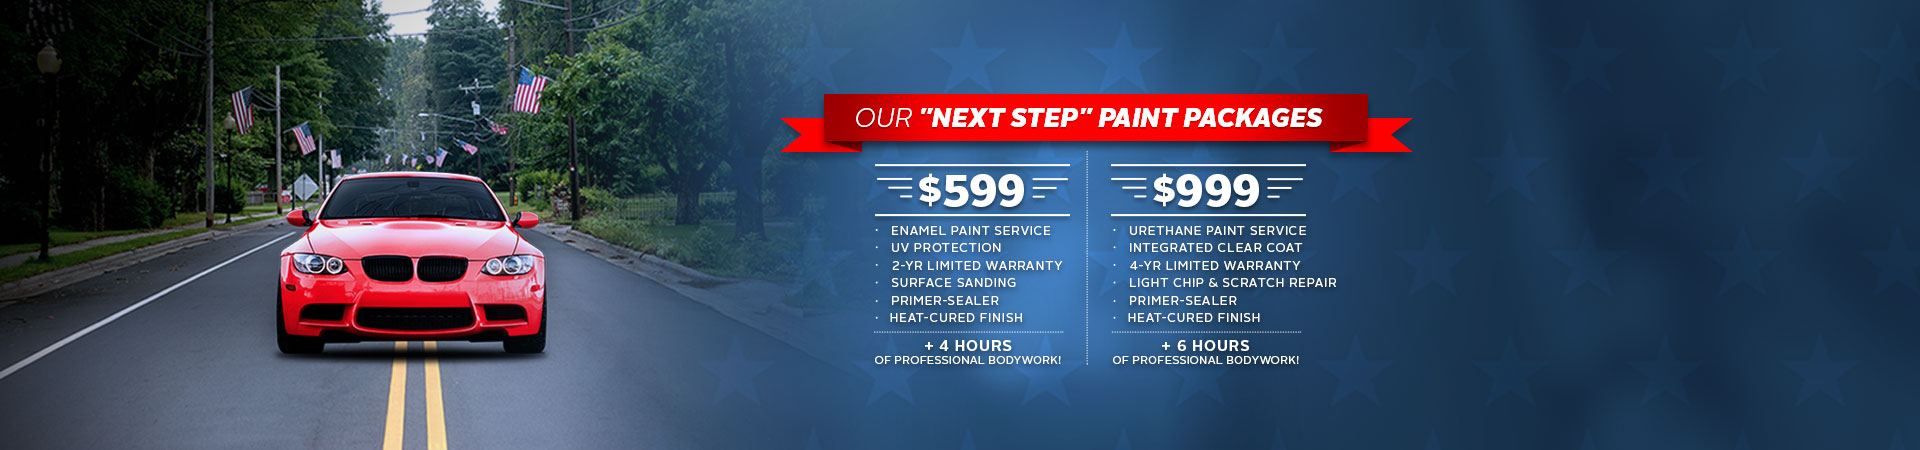 Maaco: Next Step Paint Packages